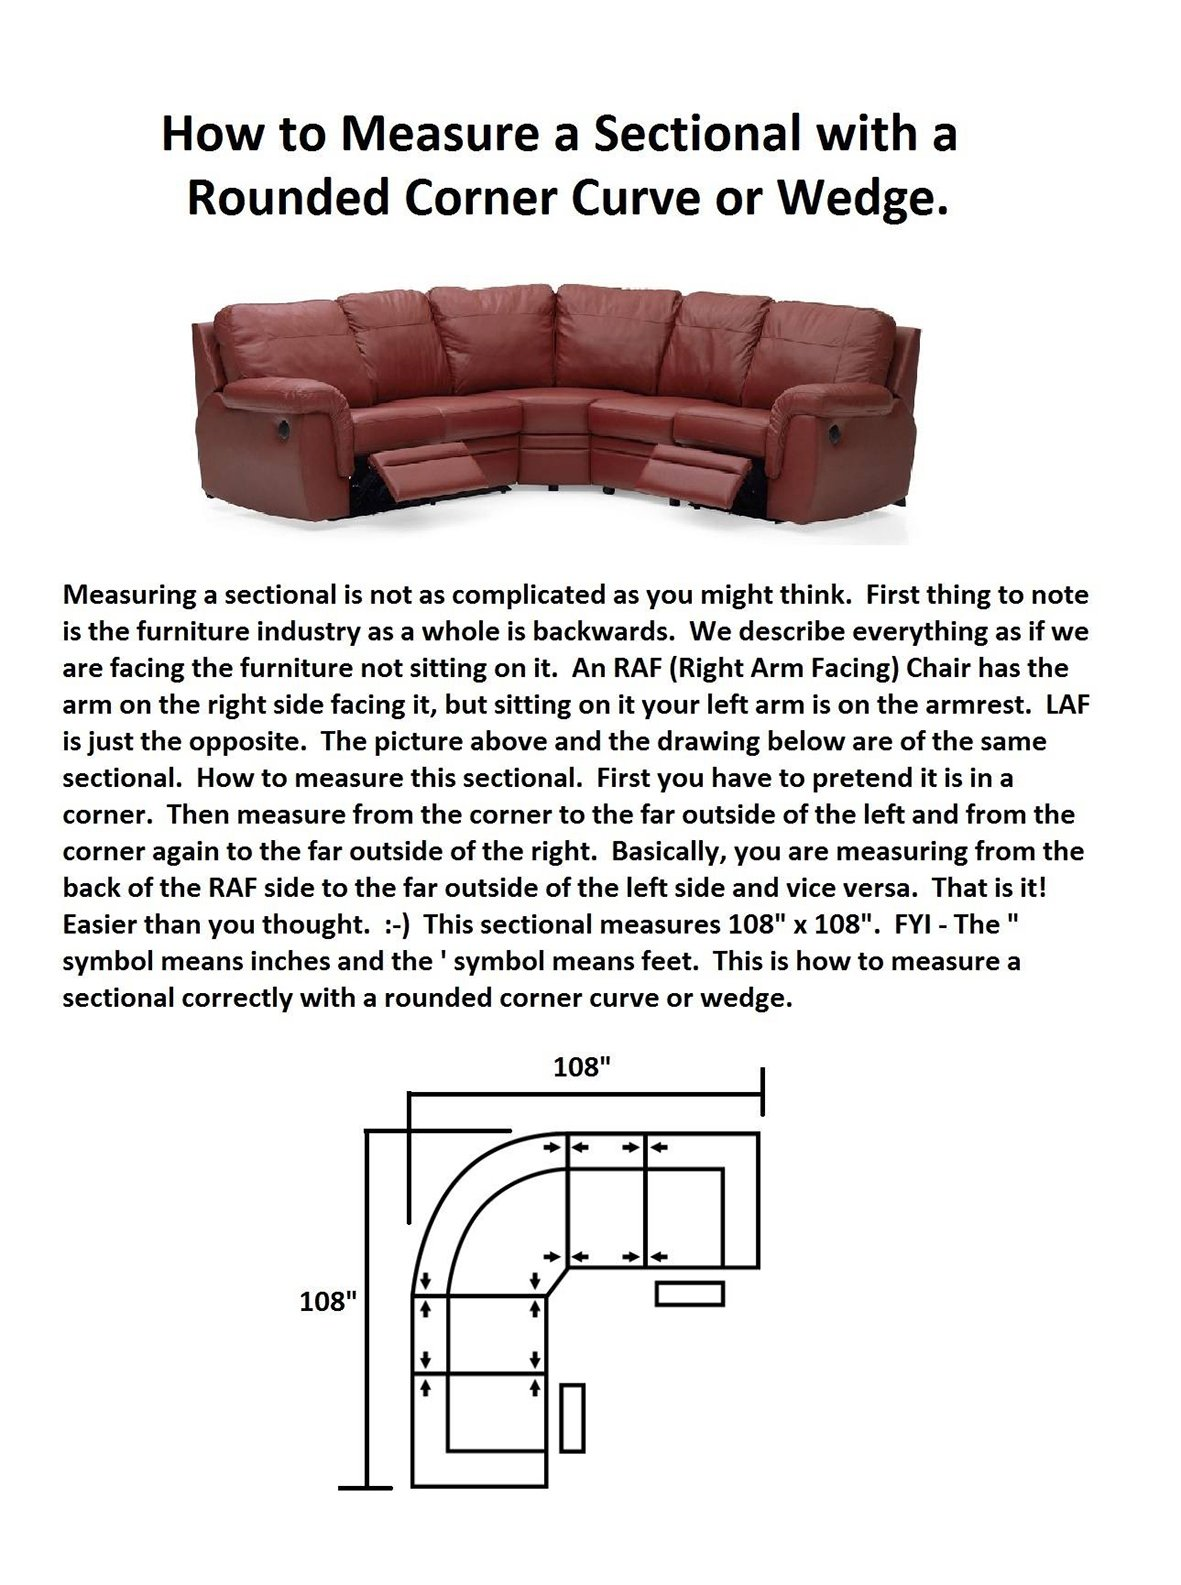 Another Way To Explain Is To Imagine You Are Building A Box Around The  Furniture; Those Are The Dimensions We Provide.